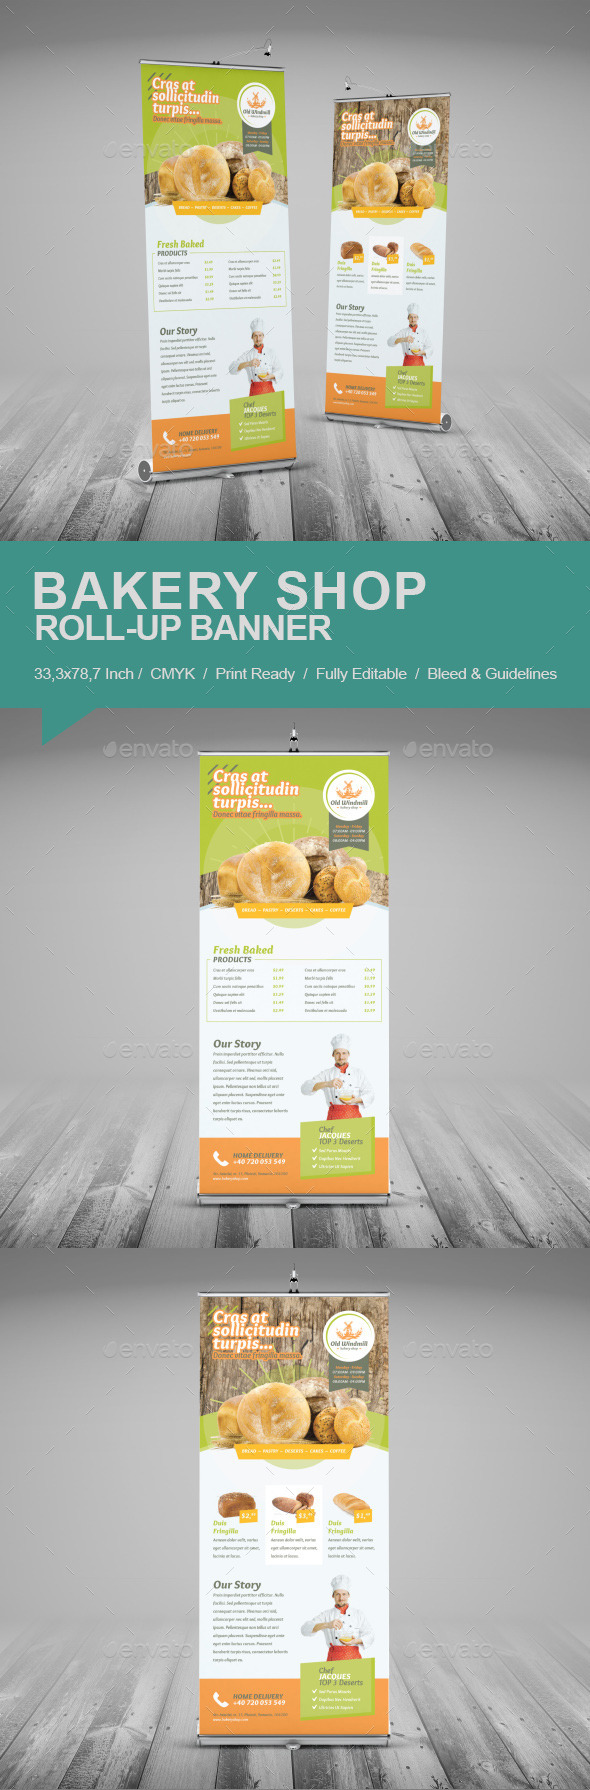 GraphicRiver Bakery Shop Roll-Up Banner 11854268